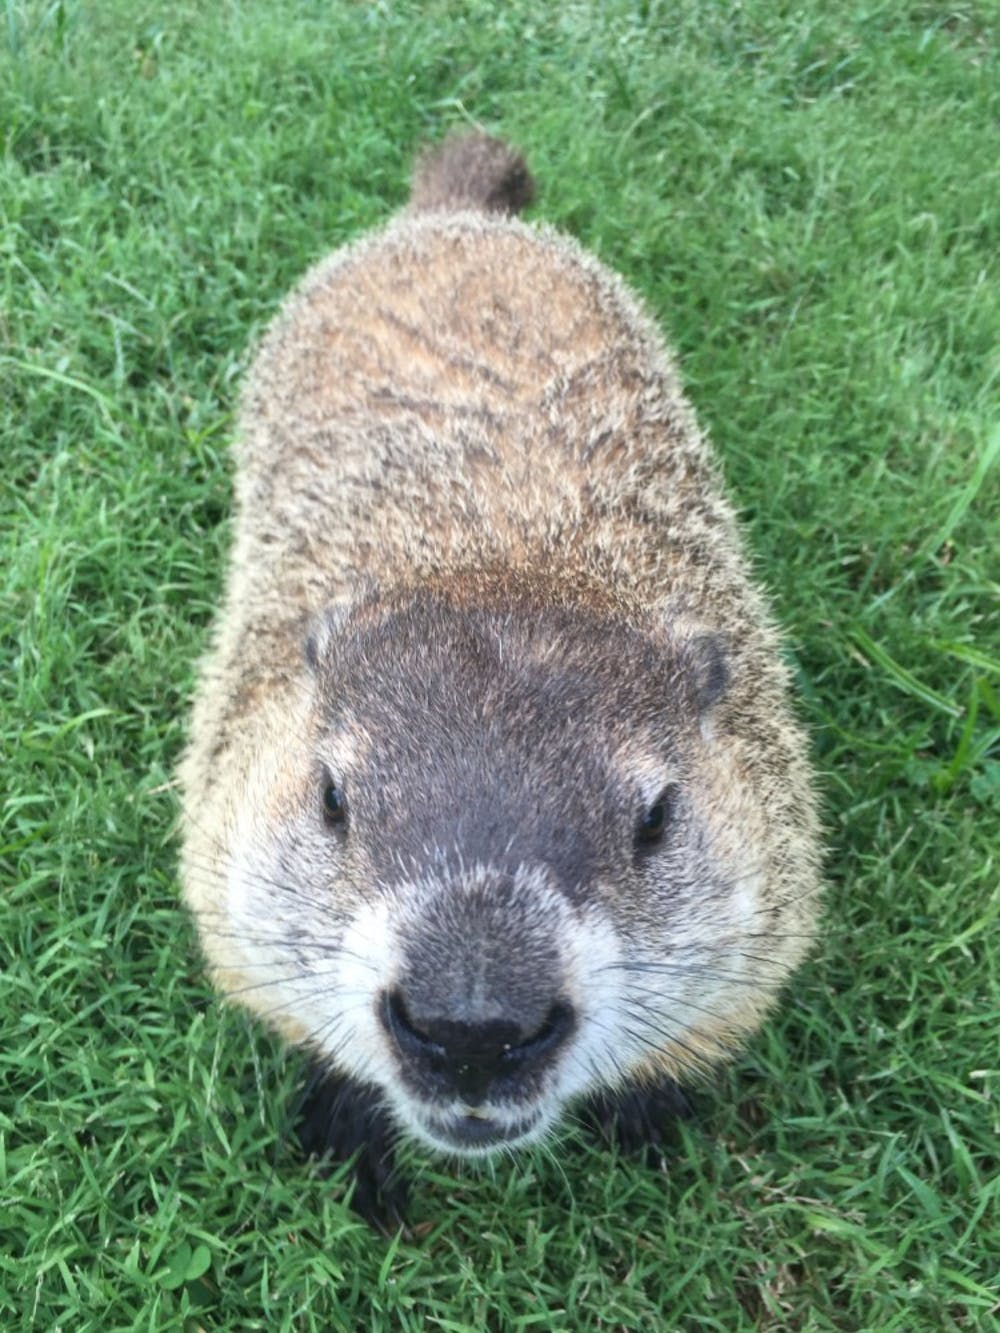 Here's how you can feed the groundhogs without harming them